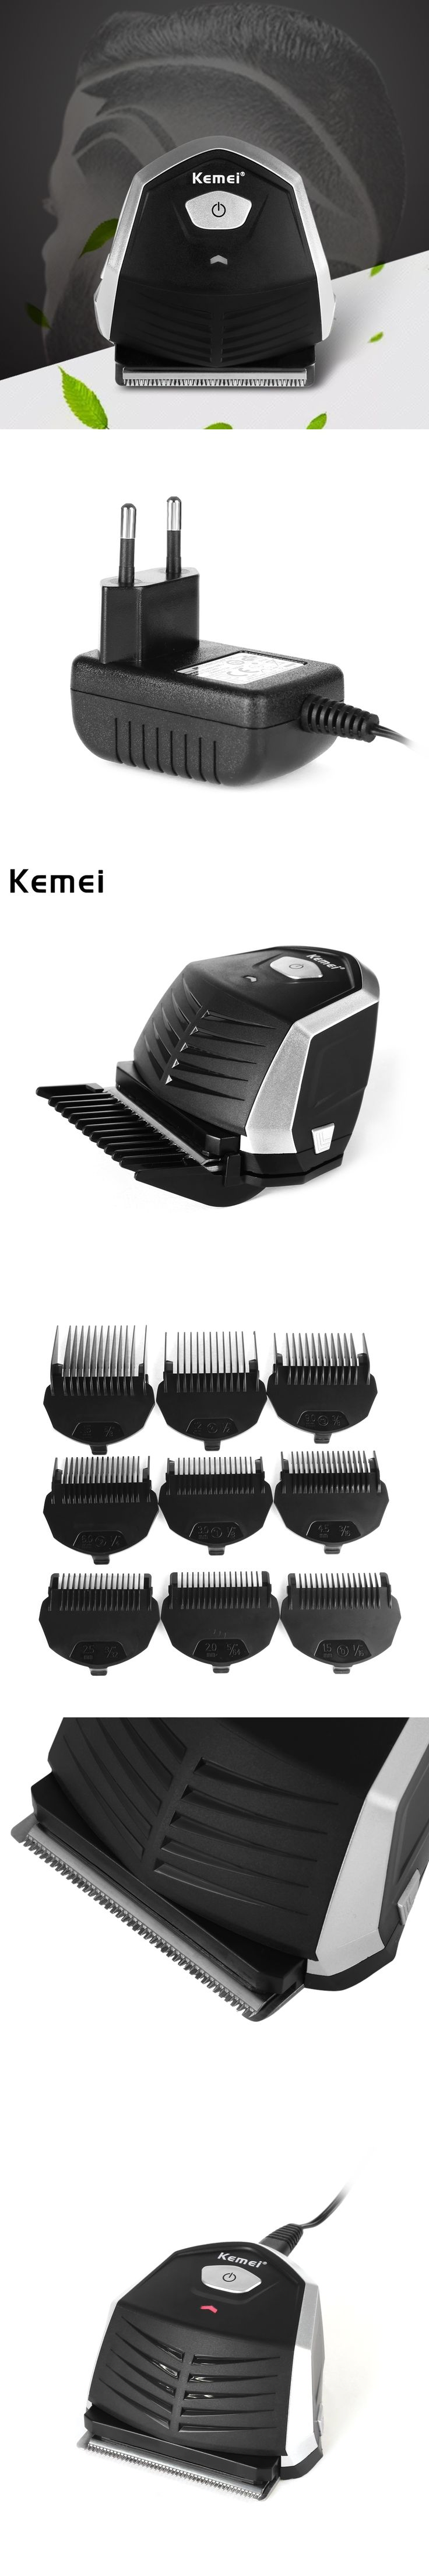 KEMEI Professional Electric Hair Trimmer Hair Clipper Haircut Beard Trimmer for Adult Men 100-240V with 9 Trimming Combs KM-6032